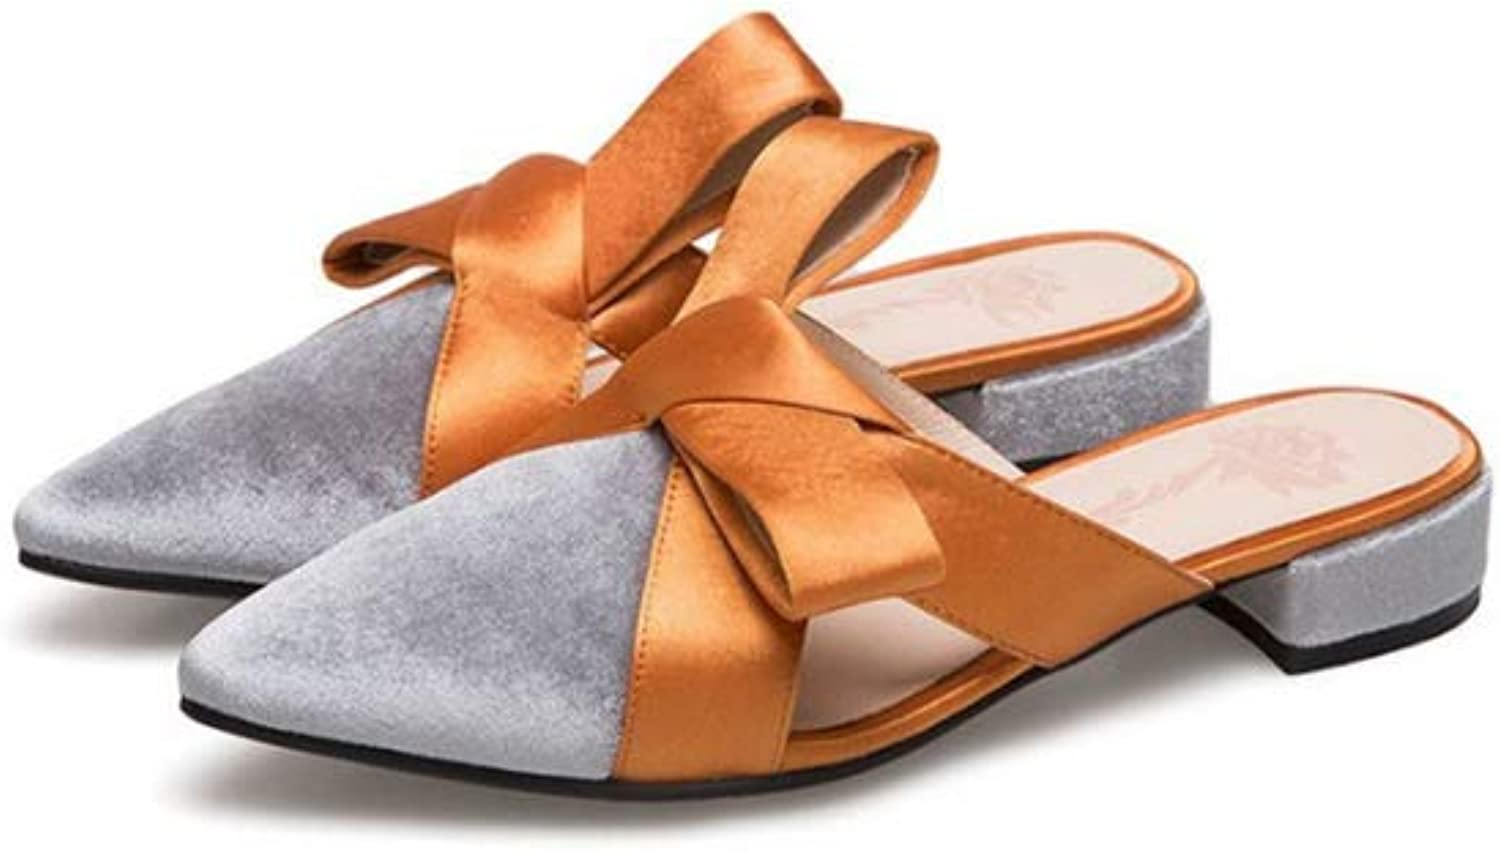 Brilliant sun Women Velvet Bowtie Mules for Woman Fashion Pointed Toe Flat Casual Mules